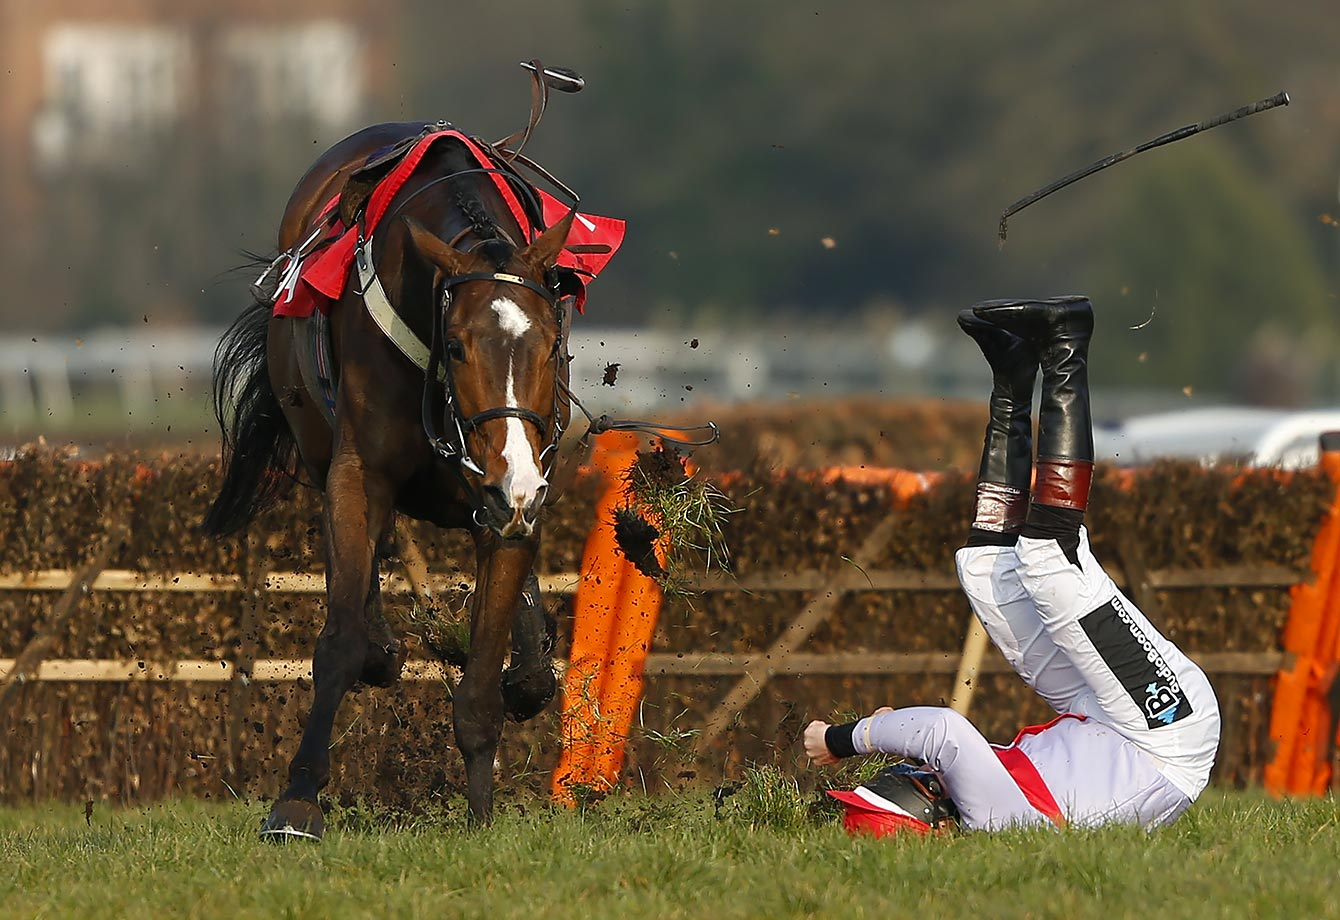 Jockey Jamie Moore is thrown from Le Boizelo at the last in The Team Army Handicap Hurdle Race at Sandown Park Racecourse in Esher, England.